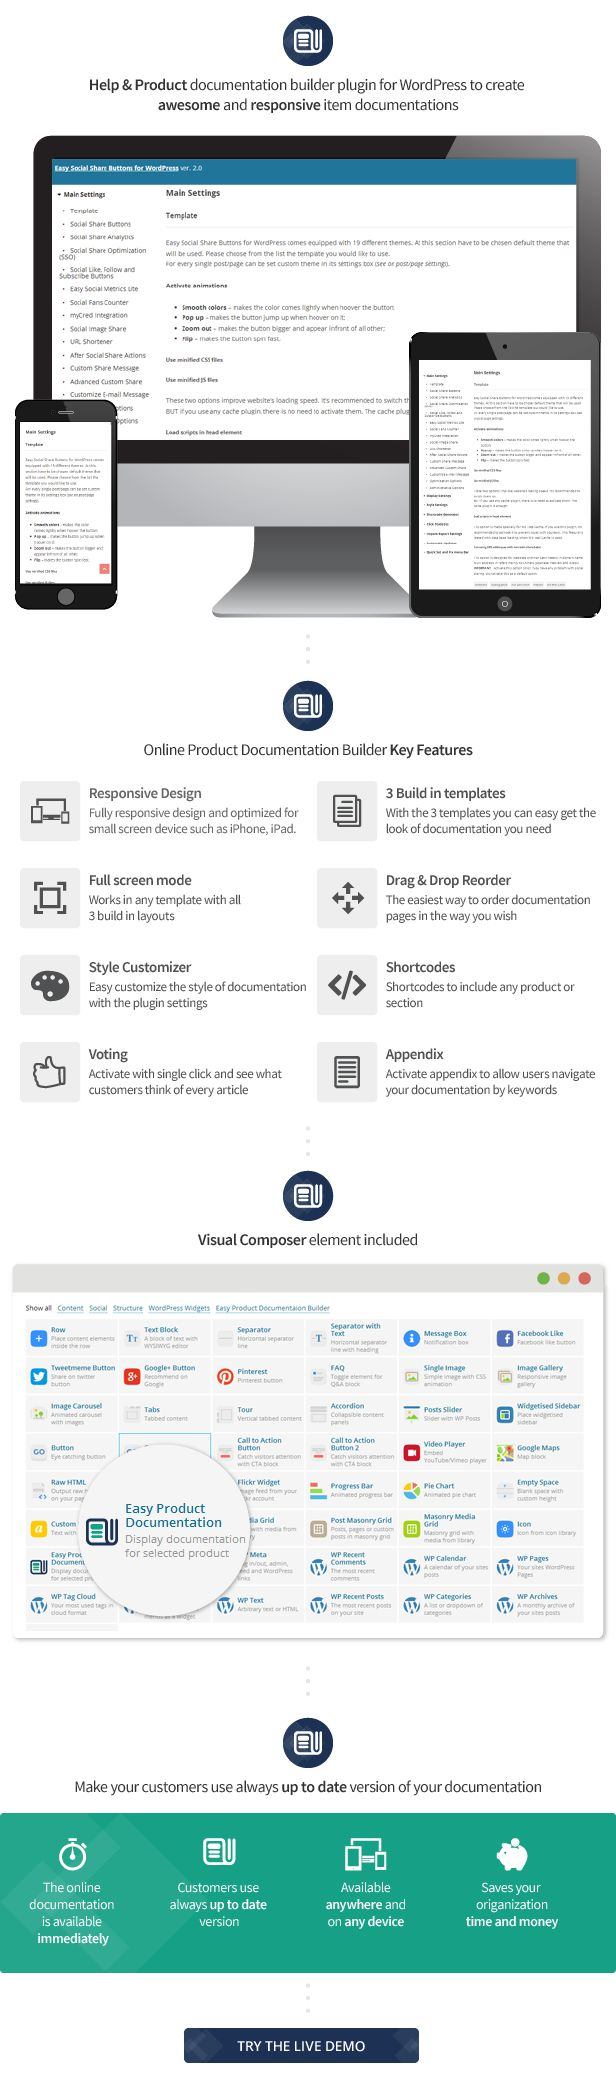 Help & Product documentation builder for WordPress to create awesome and responsive item documentations